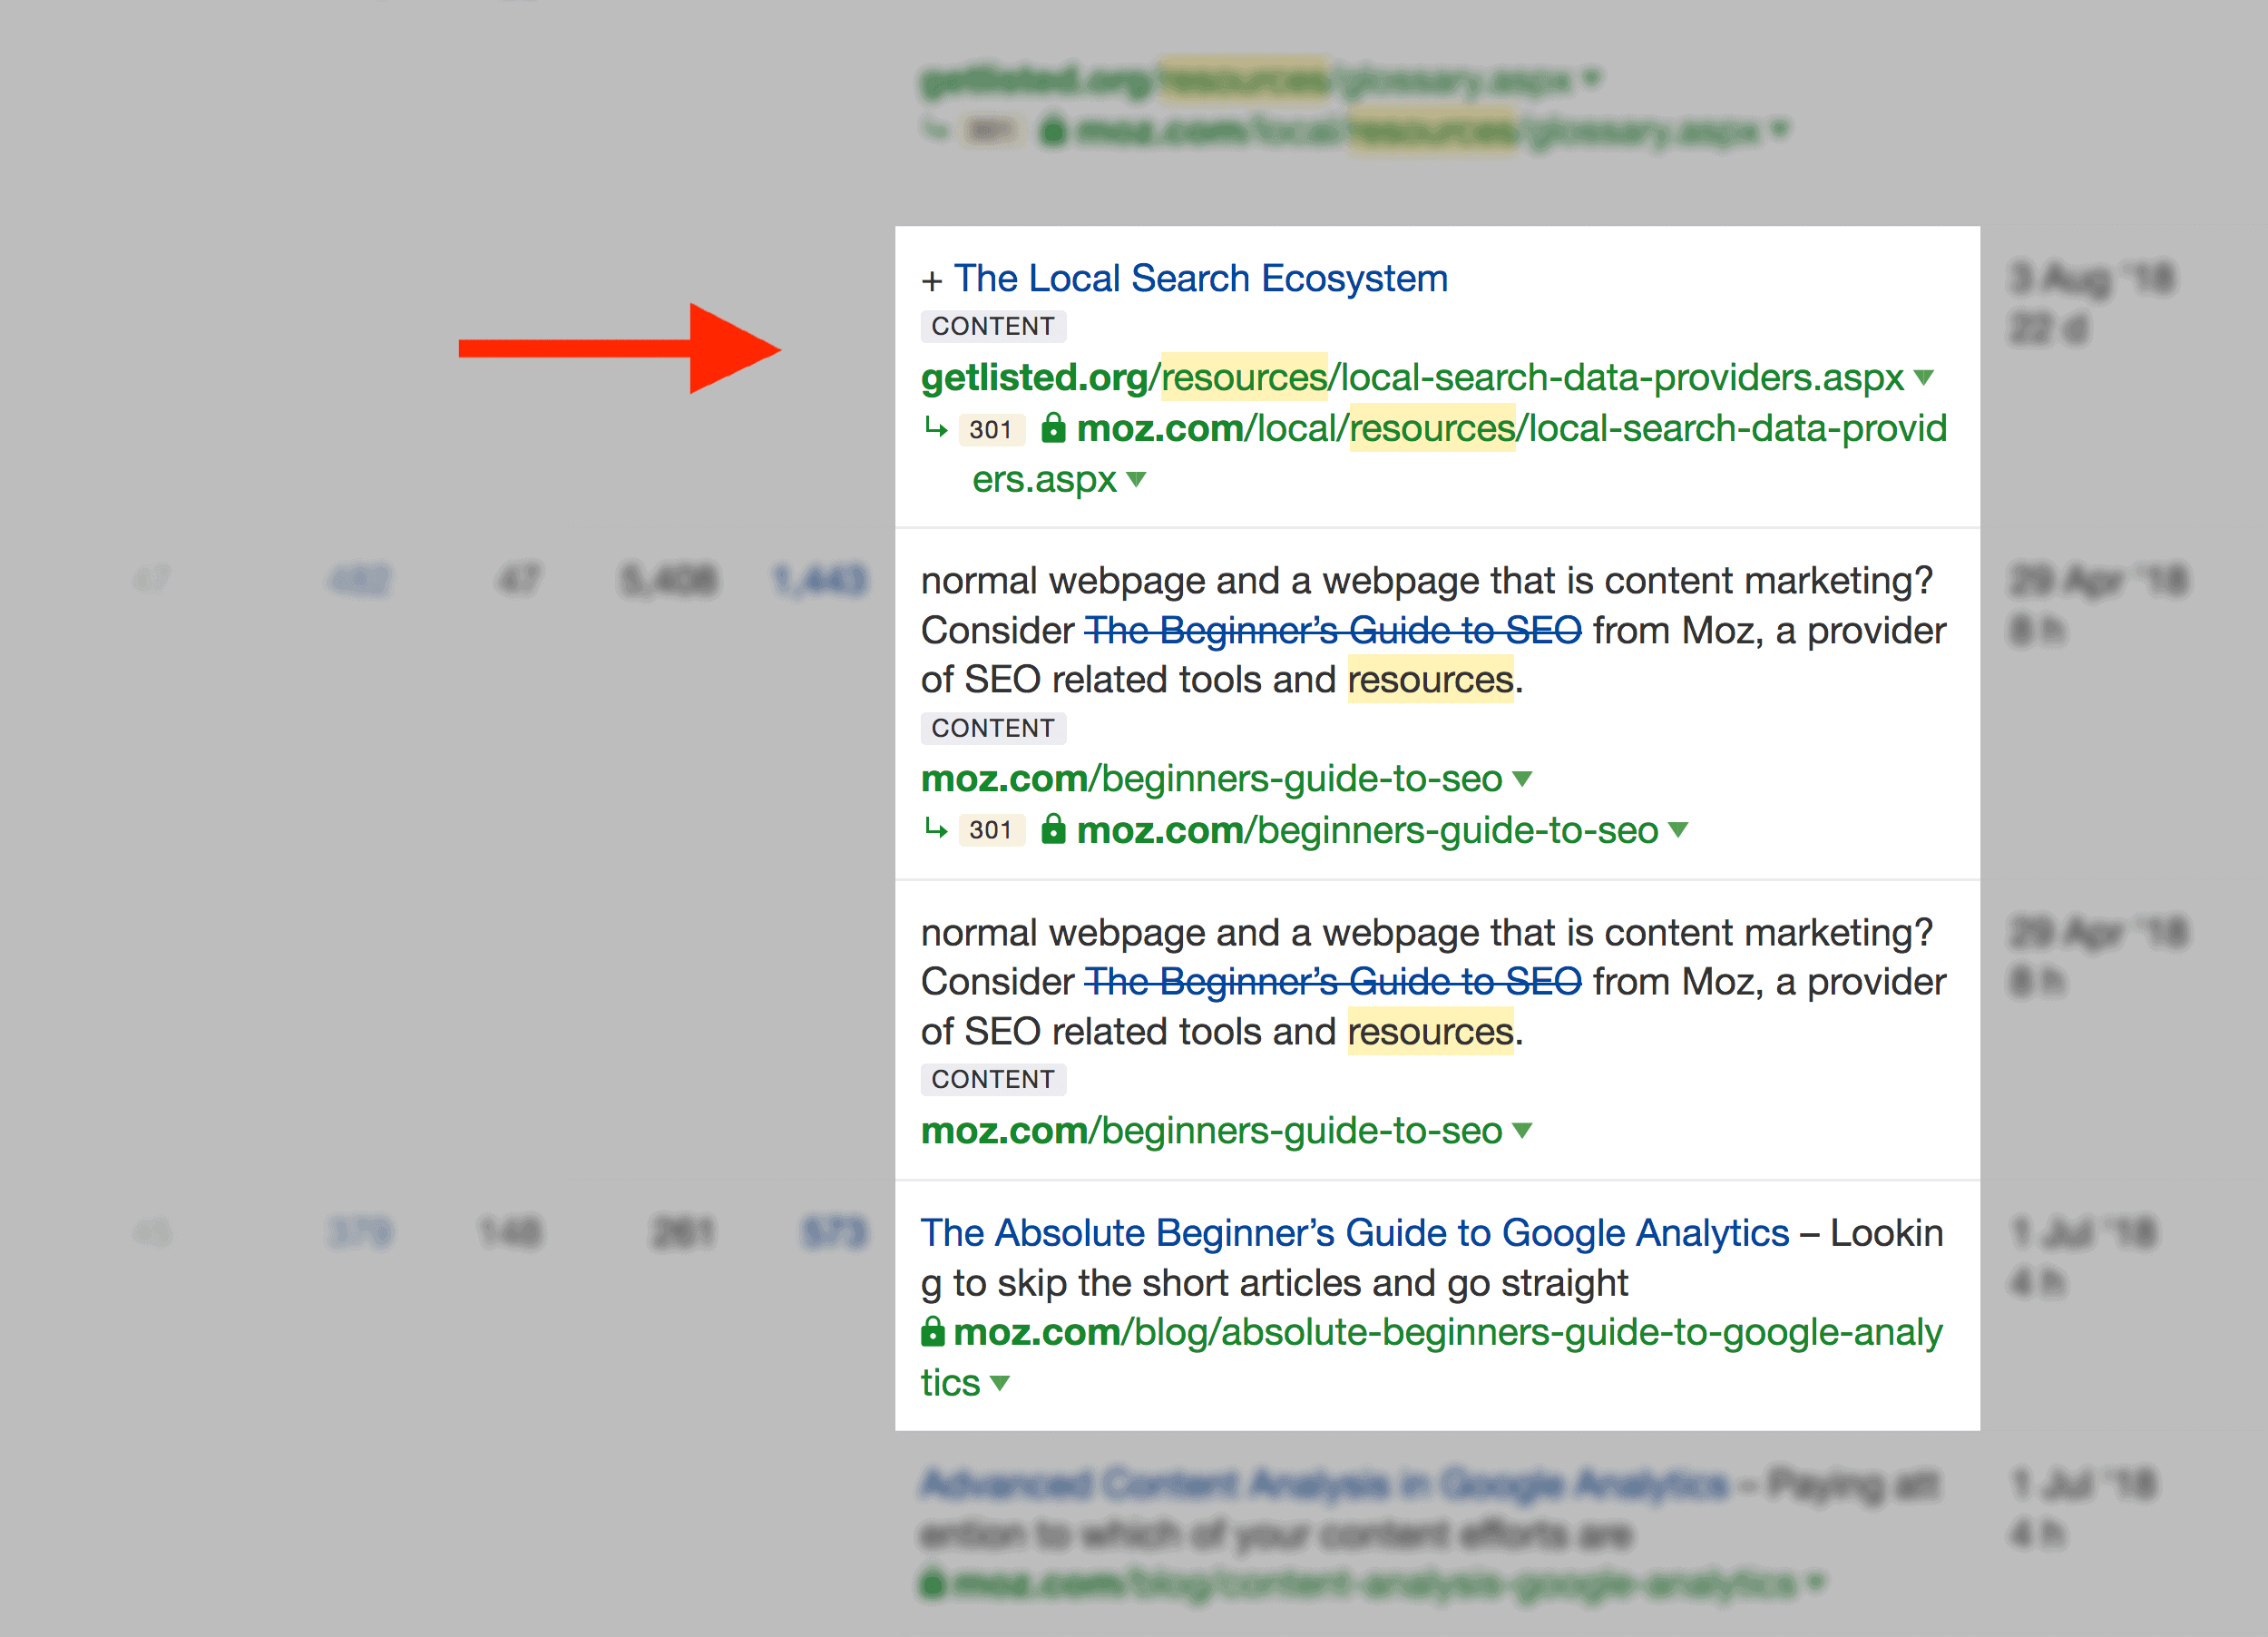 Pages that use links